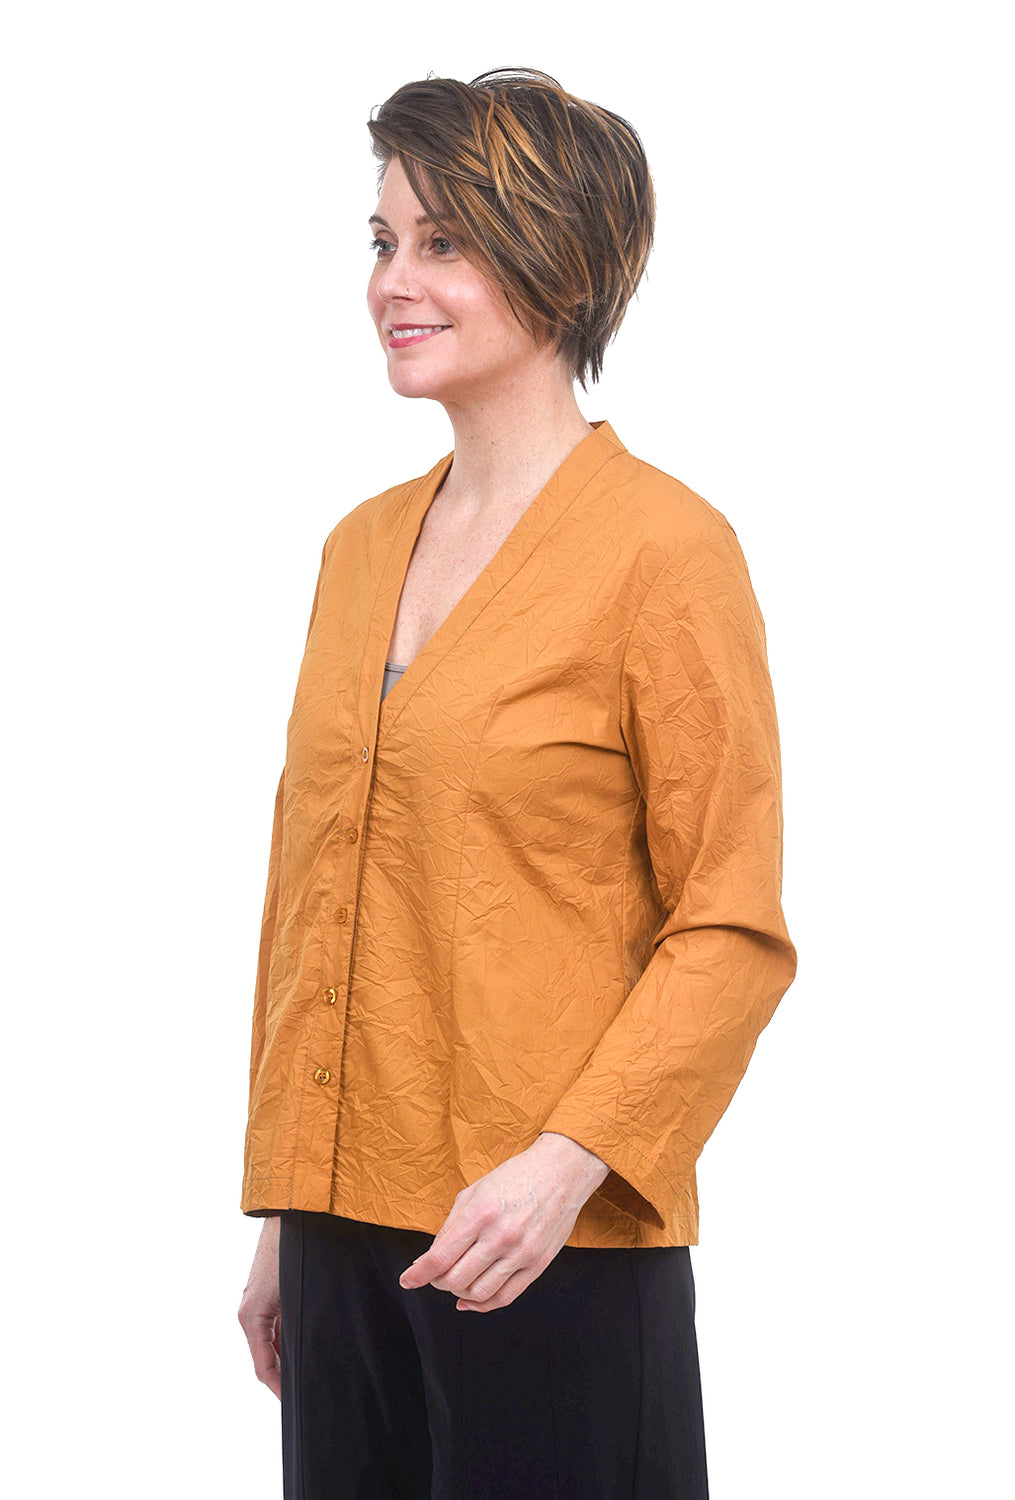 Baci Crinkled Button-Up Shirt, Mustard